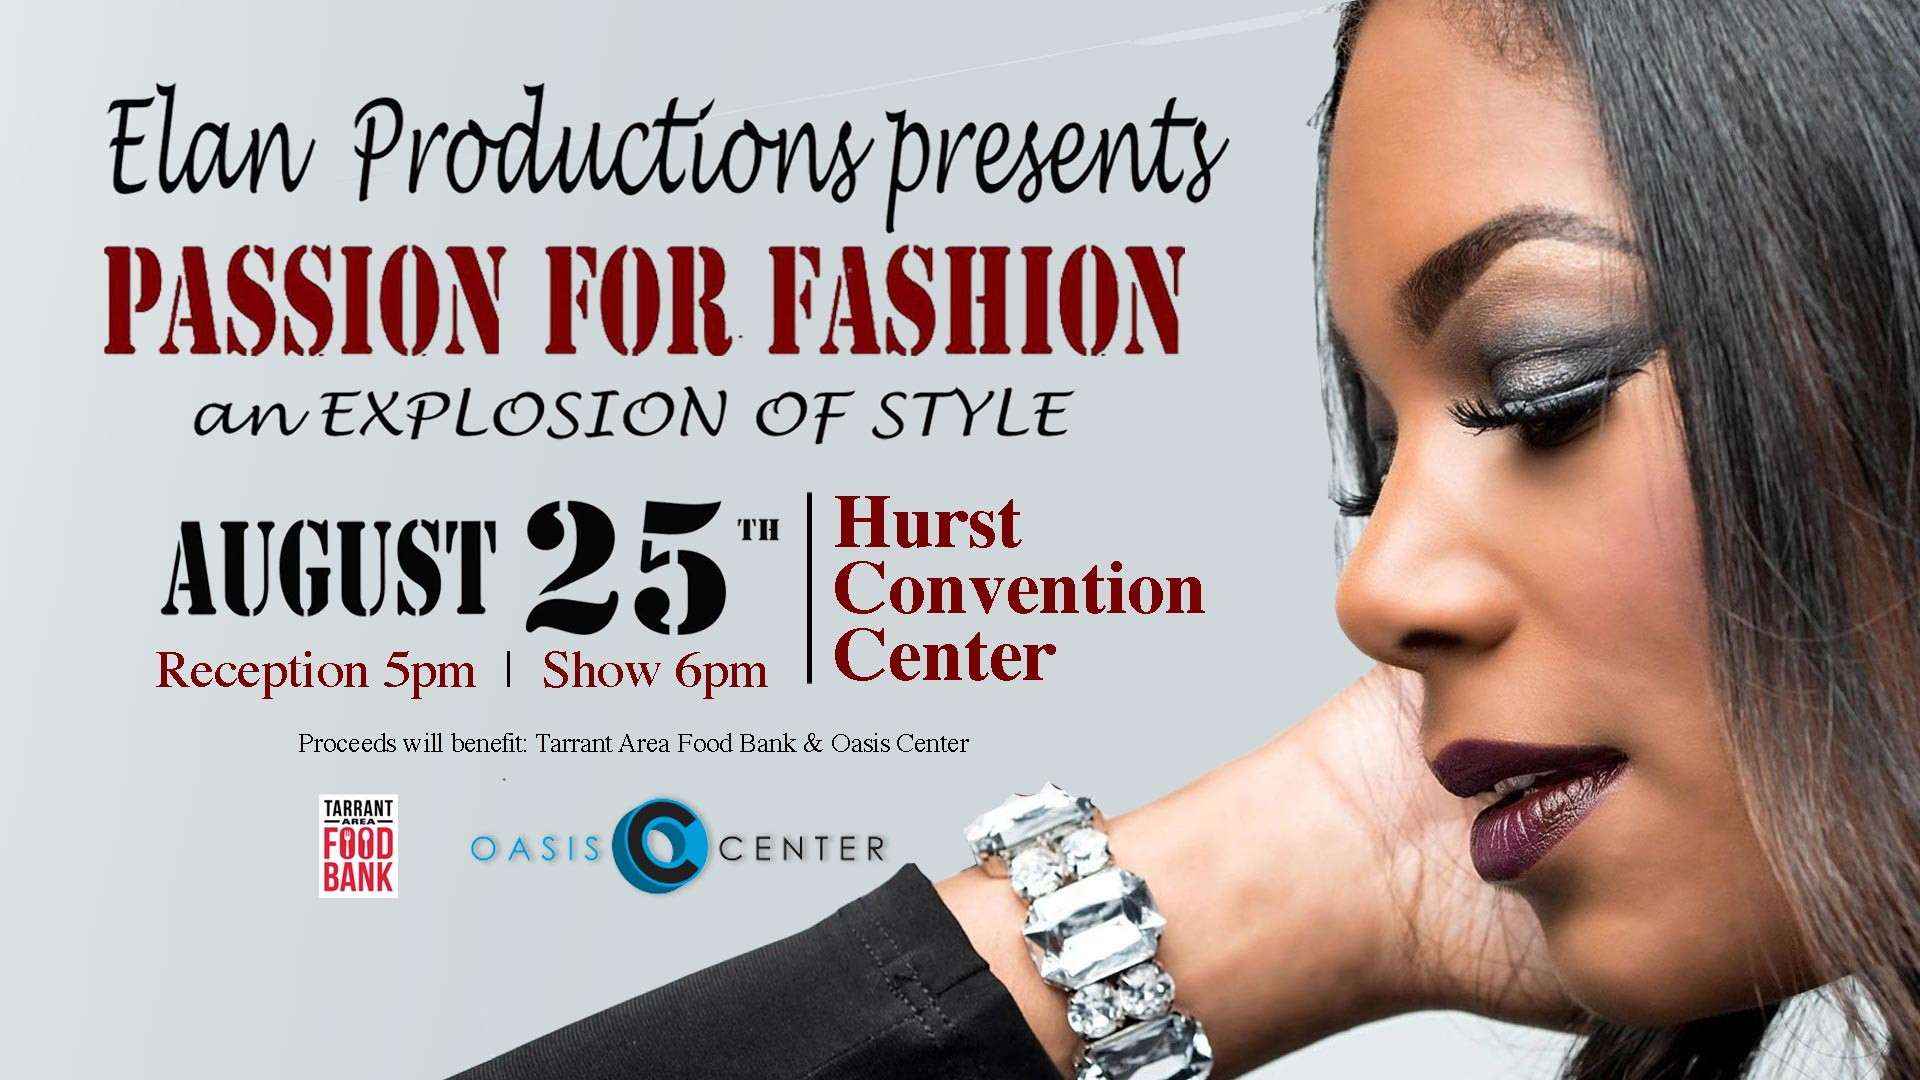 Elan Production Passion for Fashion